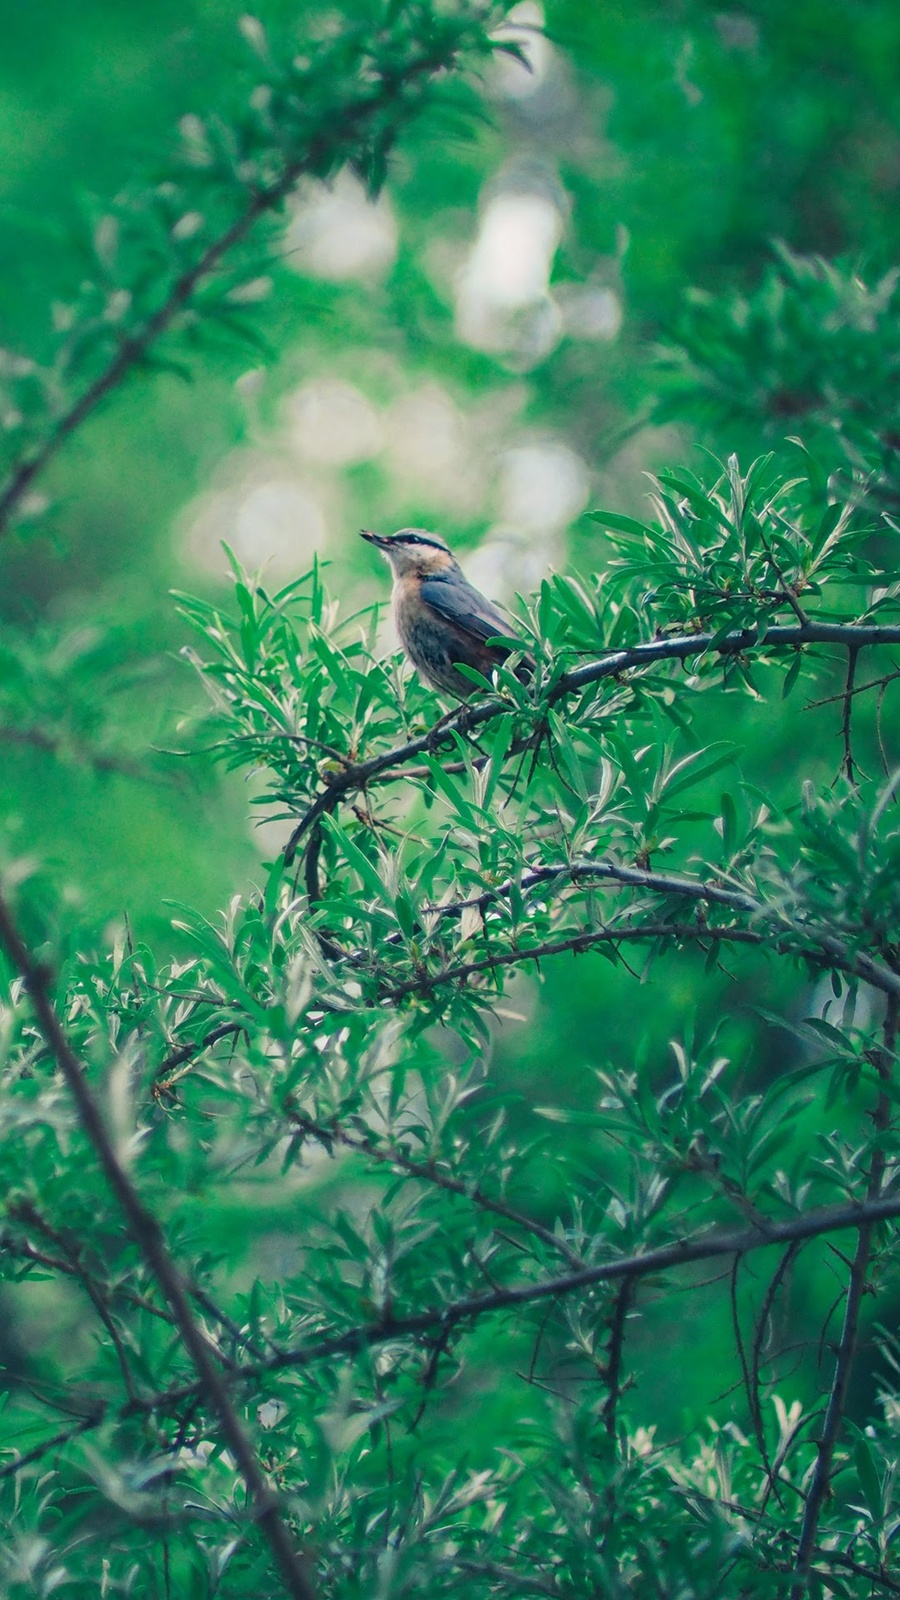 BIRD IN FOREST